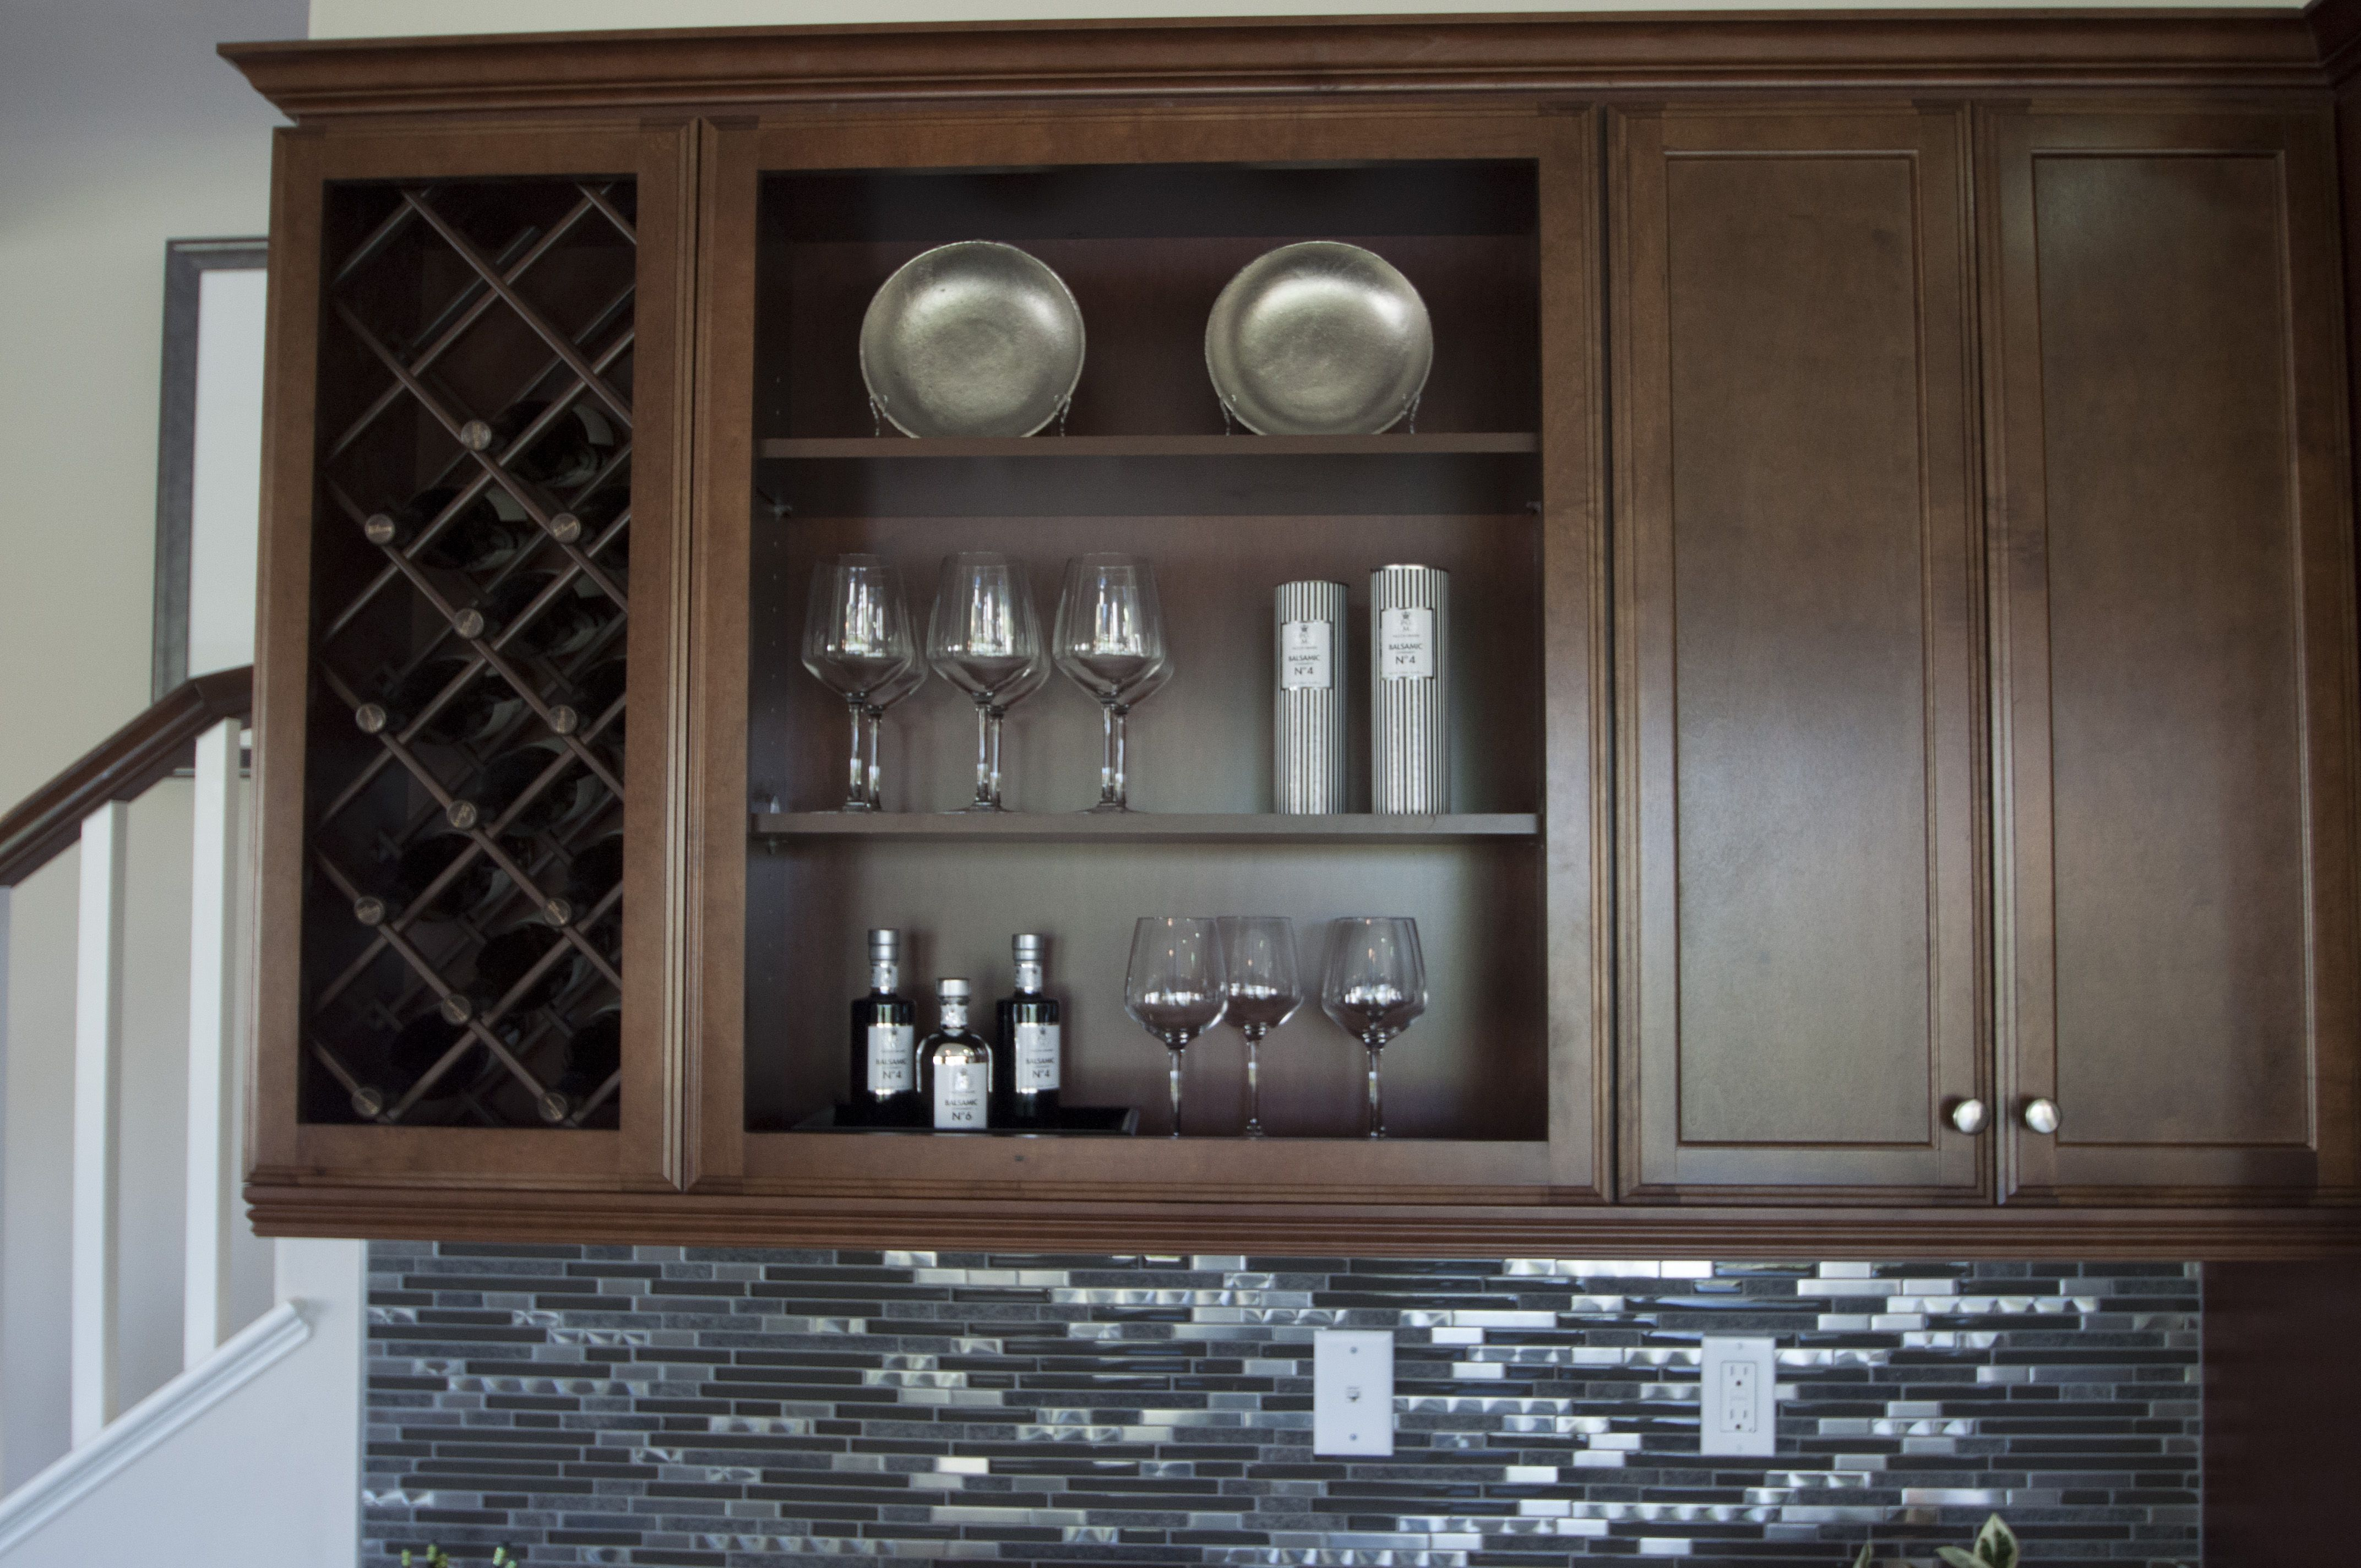 Rsi Pcs Frameless Cabinetry With Wine Rack Shown In Our Laguna Maple Door Style With Brandy F Frameless Cabinetry Kitchen Remodeling Projects Wine Rack Cabinet